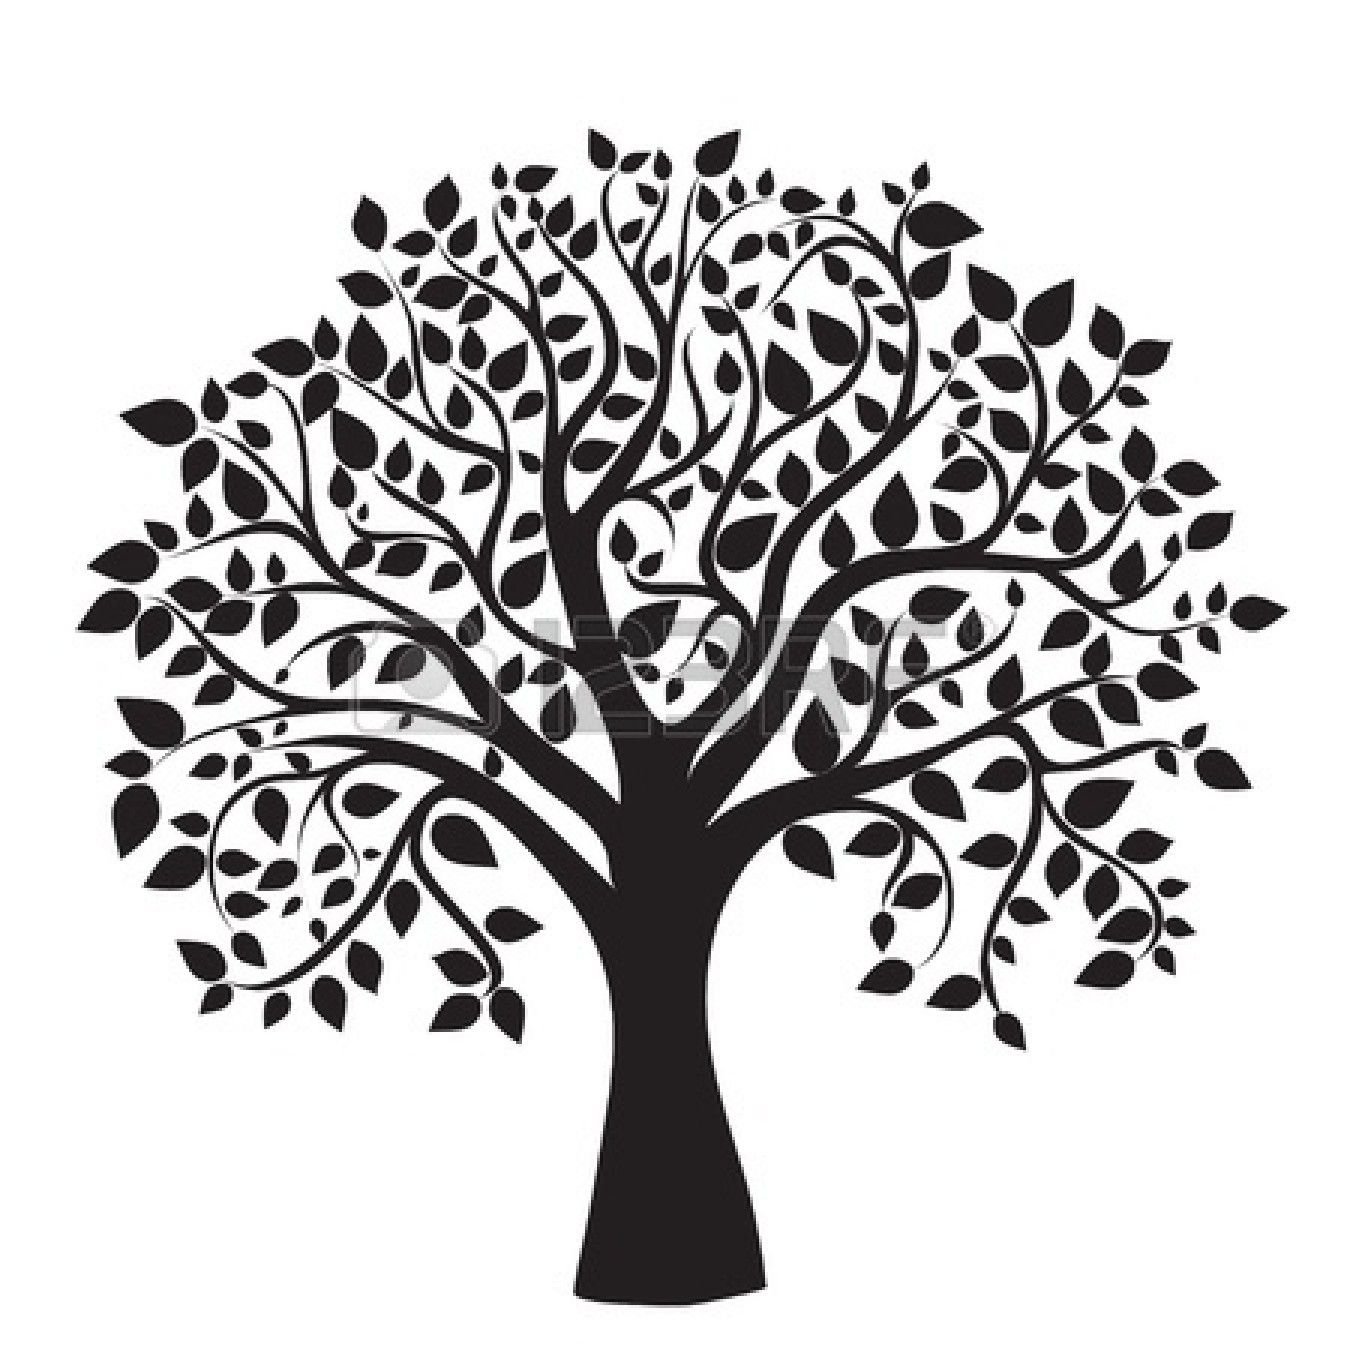 Clipart trees black and white free | ClipartDeck - Clip ...